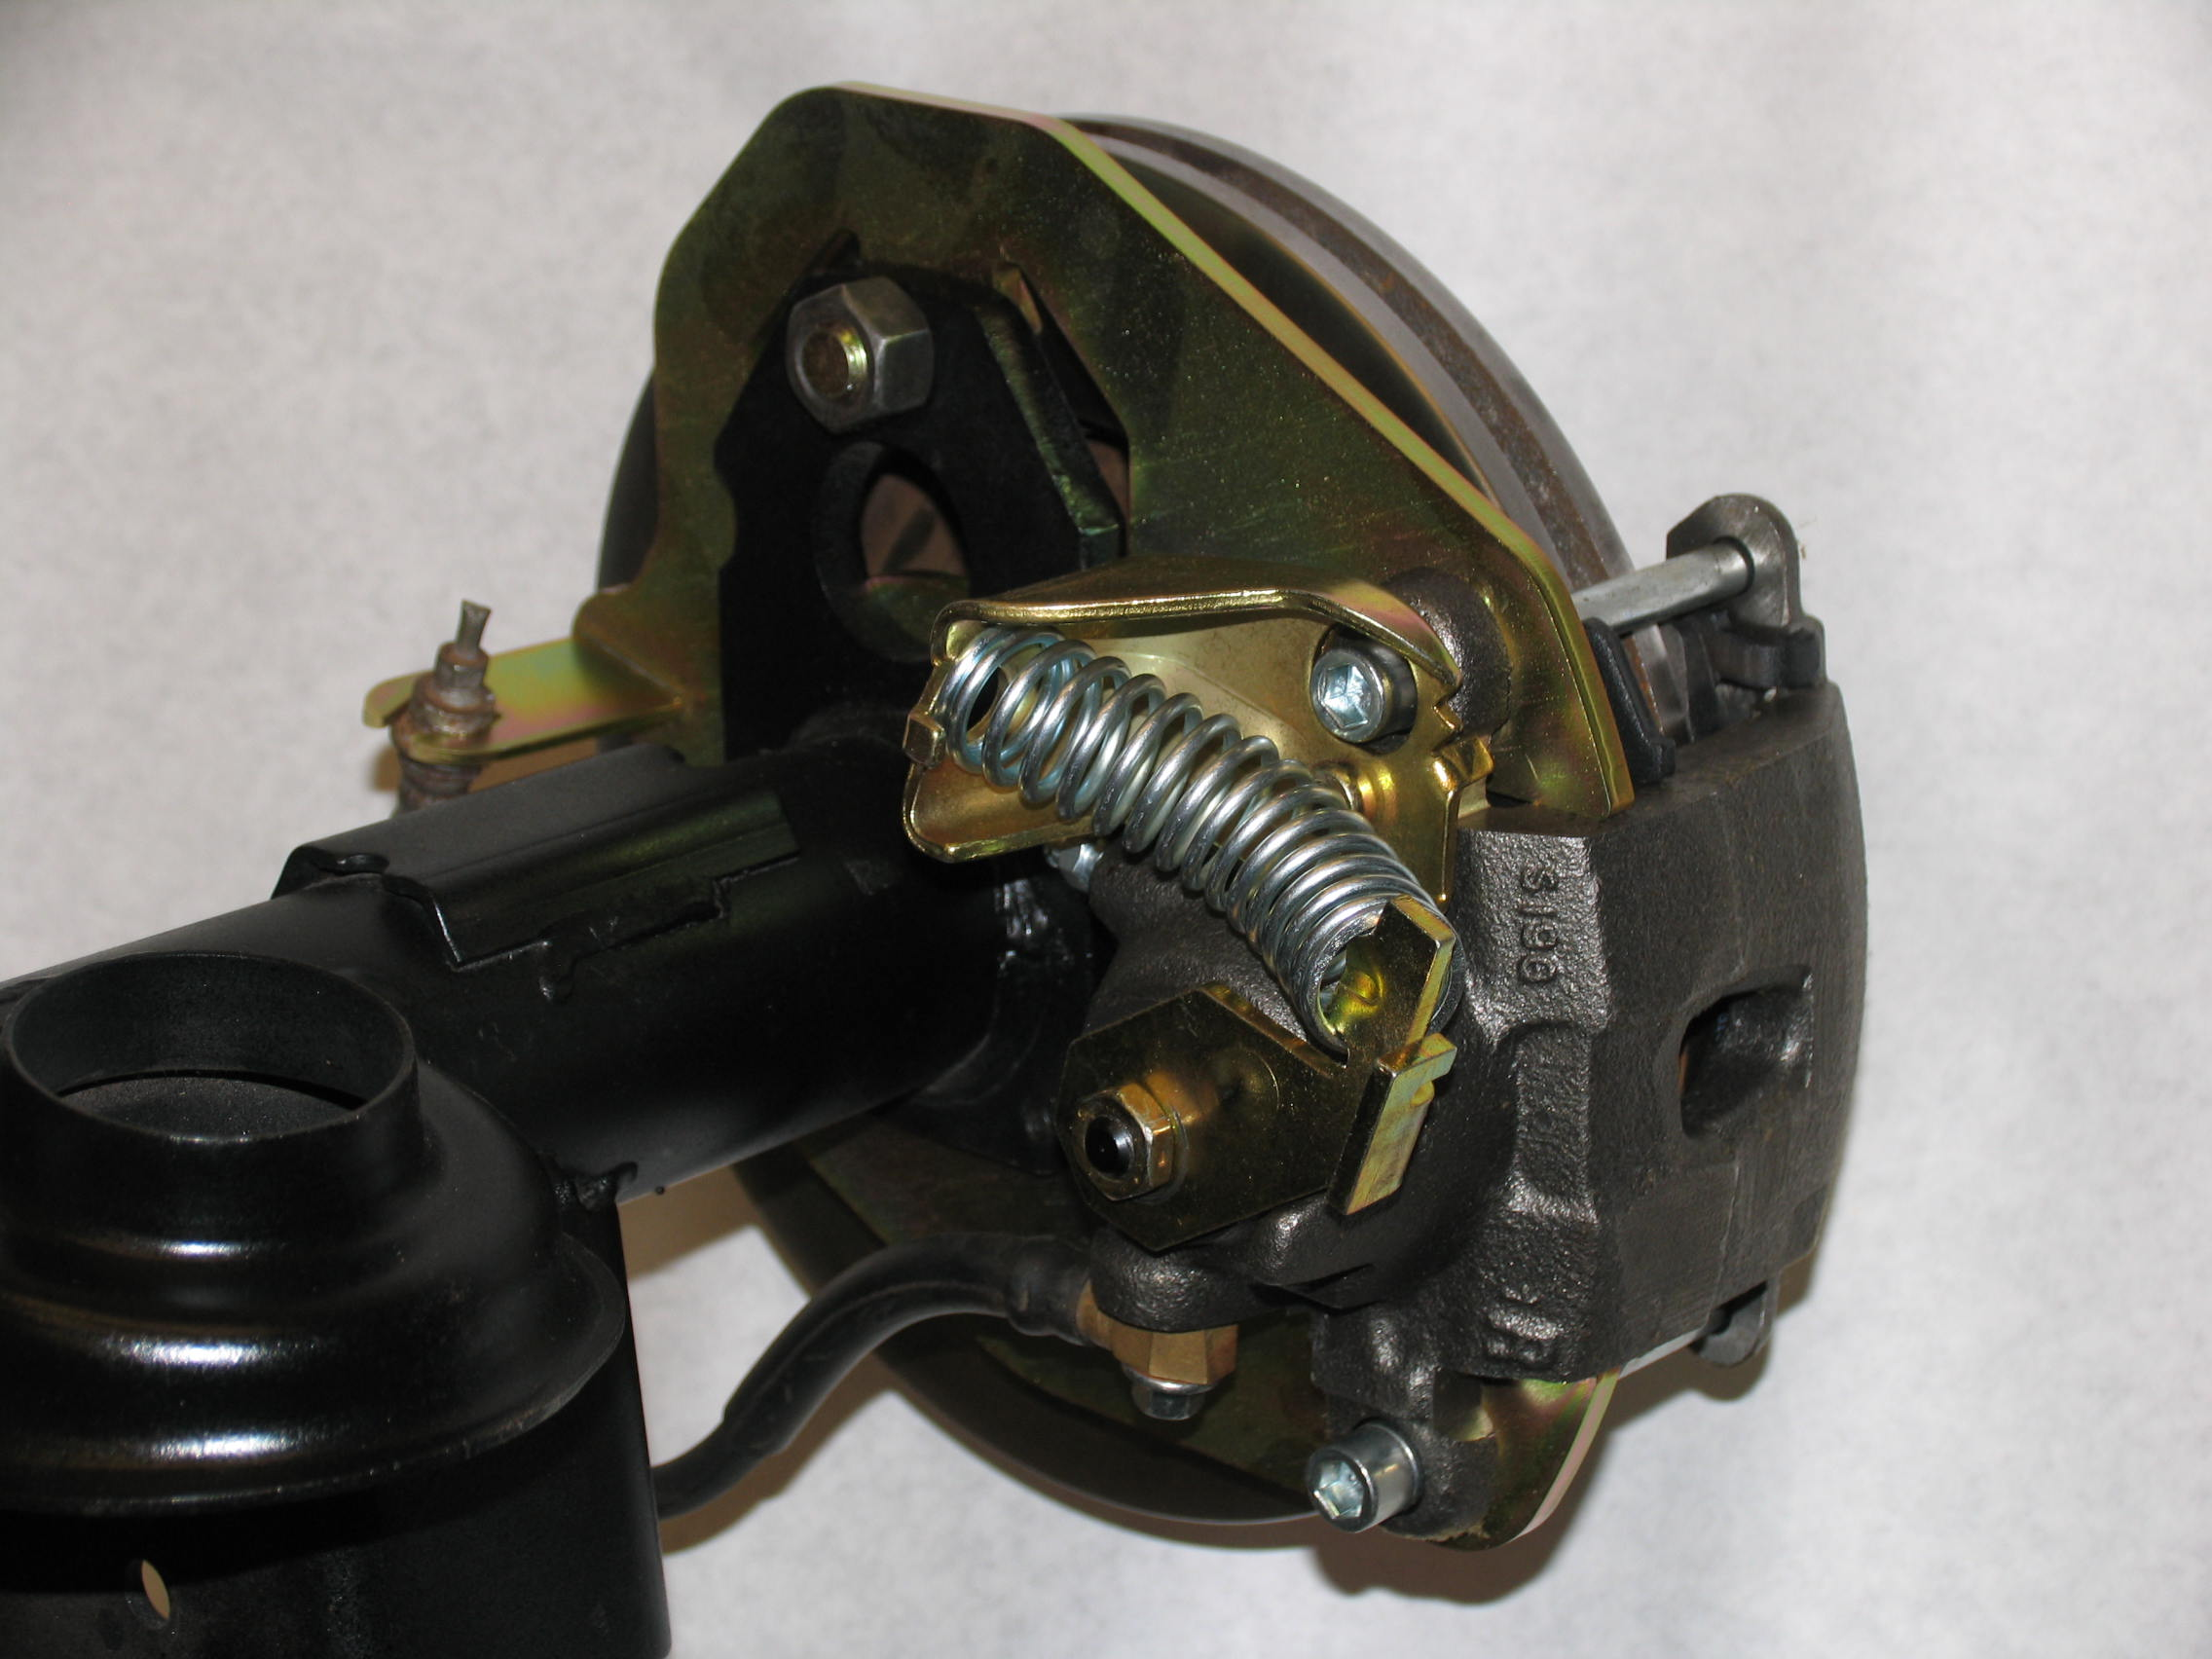 Ca Abc D D Brake Caliper De likewise How To Find And Repair A Brake Fluid Leak Car Raised On Jack With Wheel Removed And Wheel Chock Opposite The Removed Wheel in addition D Just Did Rear Brake Job Pretty Billet Dana Cover as well Disque Frein Ventile in addition Ford F Series Brake Kit. on brake caliper bolts chevy